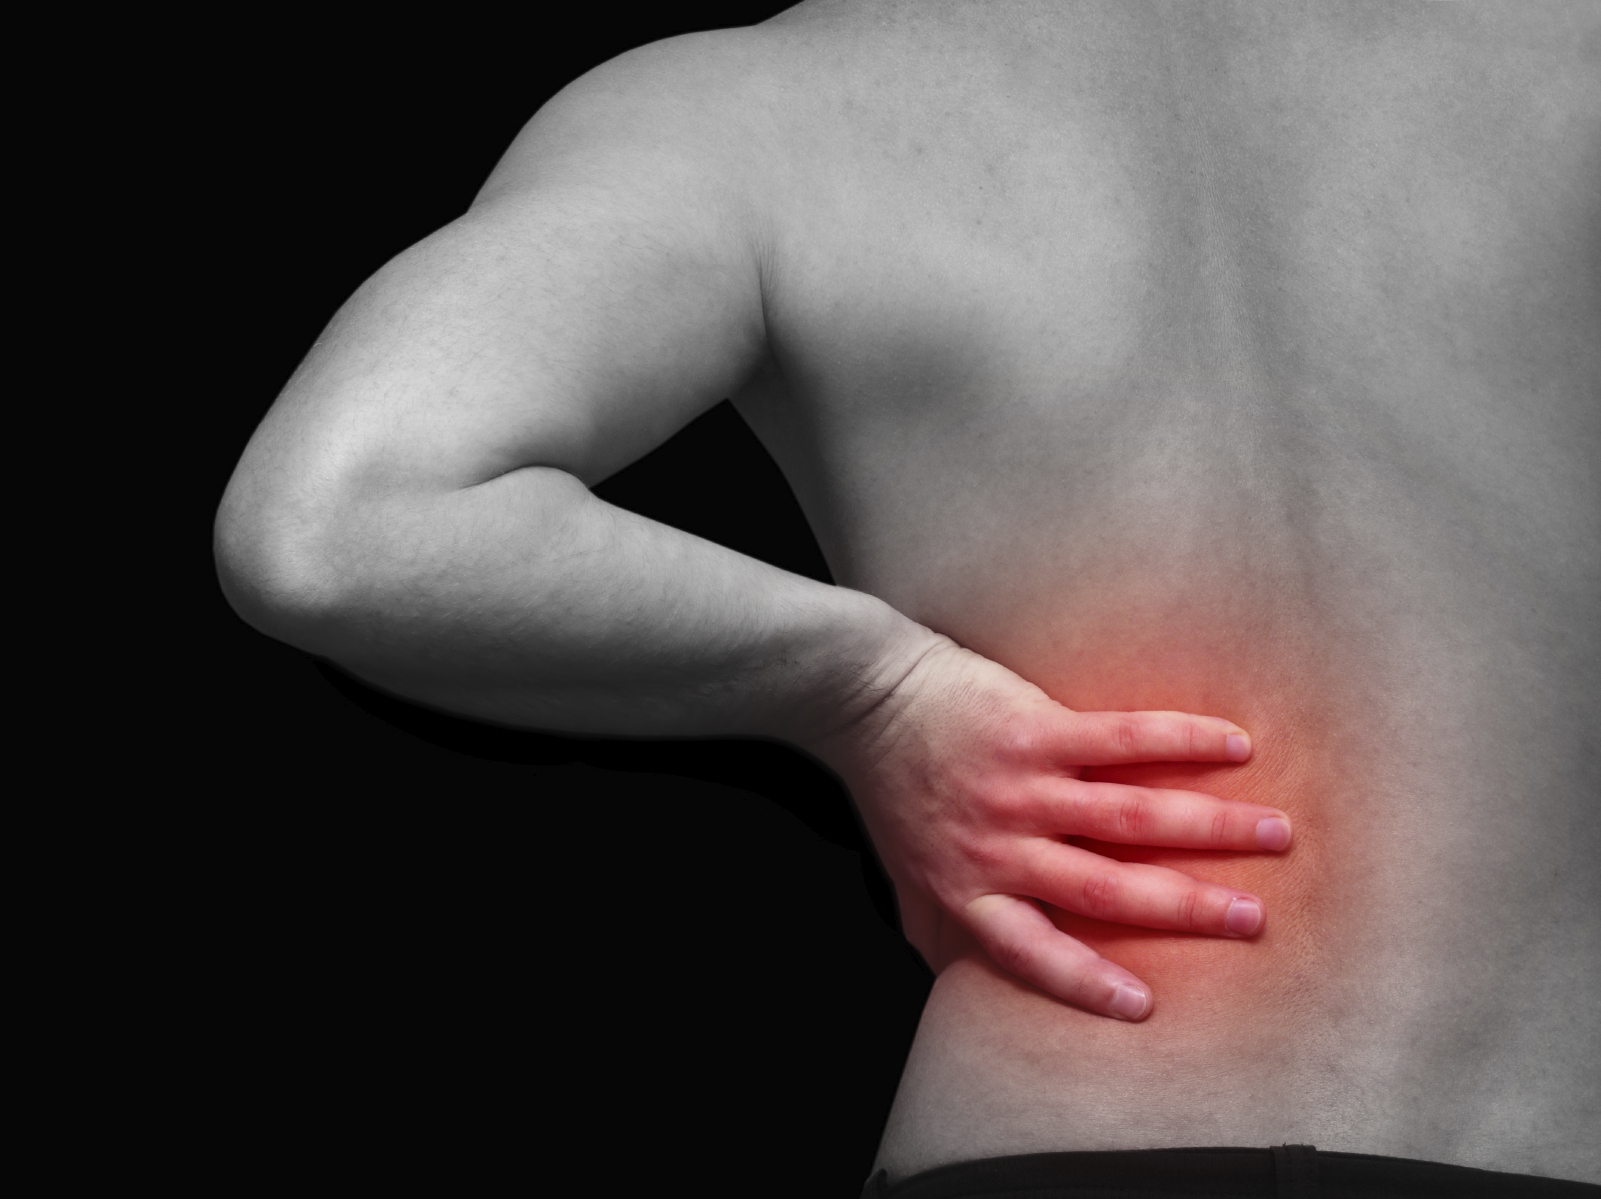 ... Lexington Family Chiropractic and let us get you back pain relief